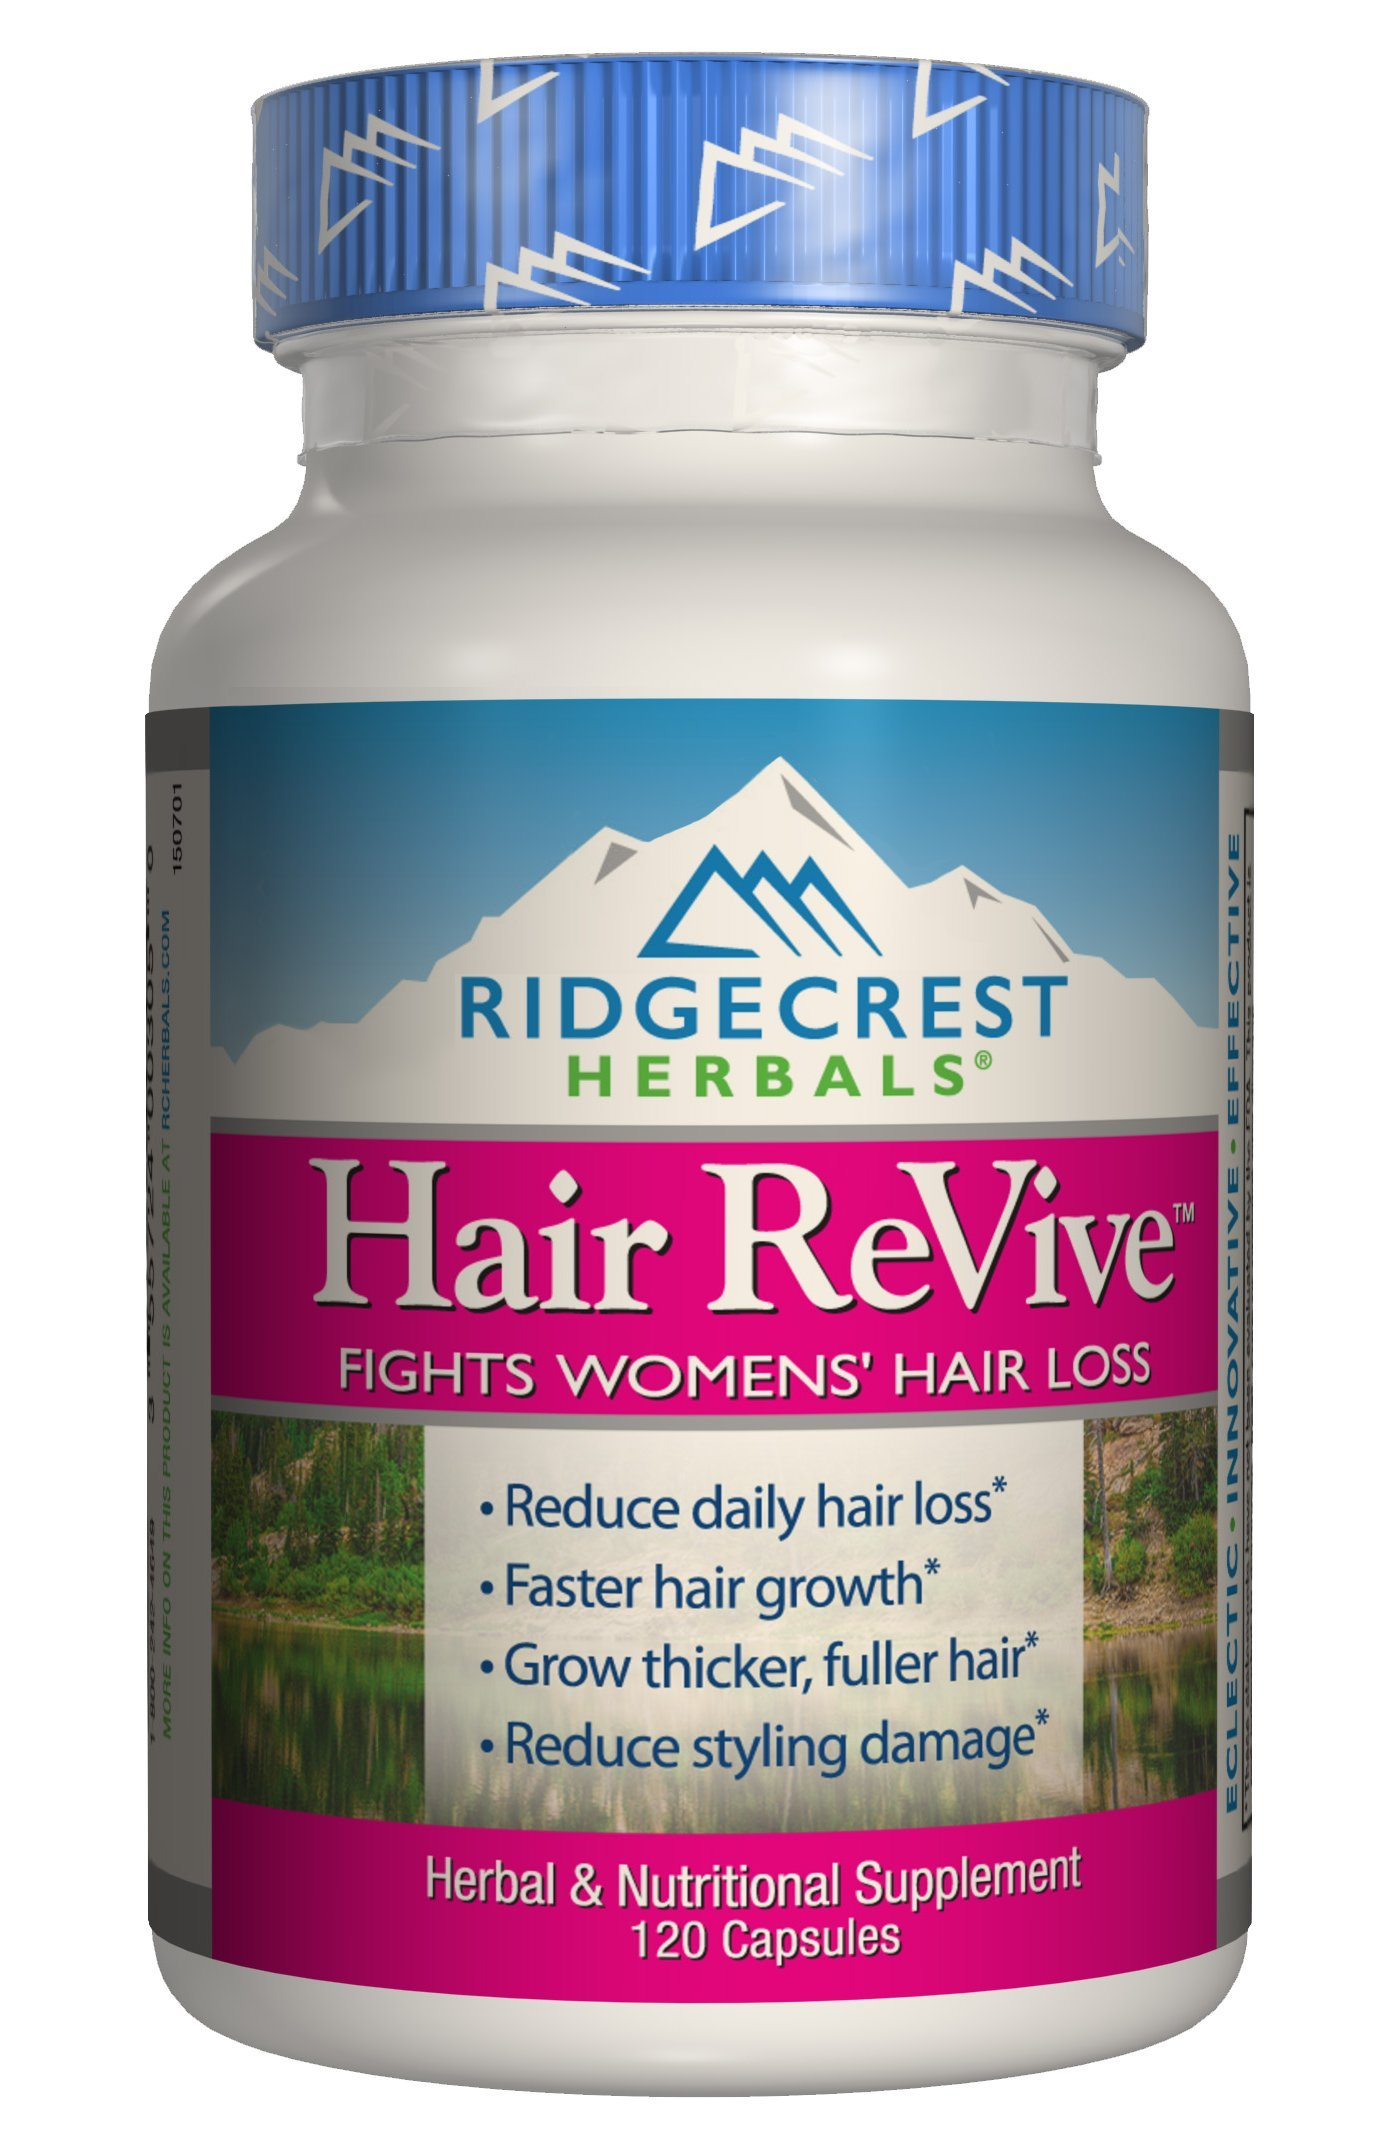 Ridgecrest Herbals Hair ReVive, Hair Growth Support, 120 Capsules by Ridgecrest Herbals